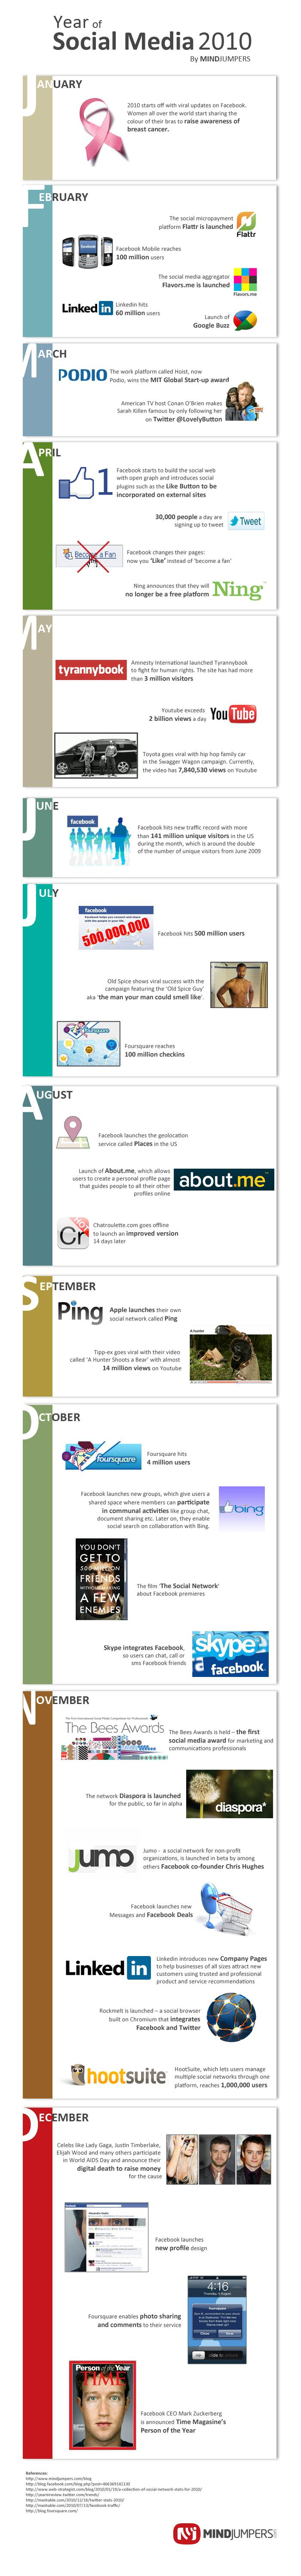 MJinfographic1